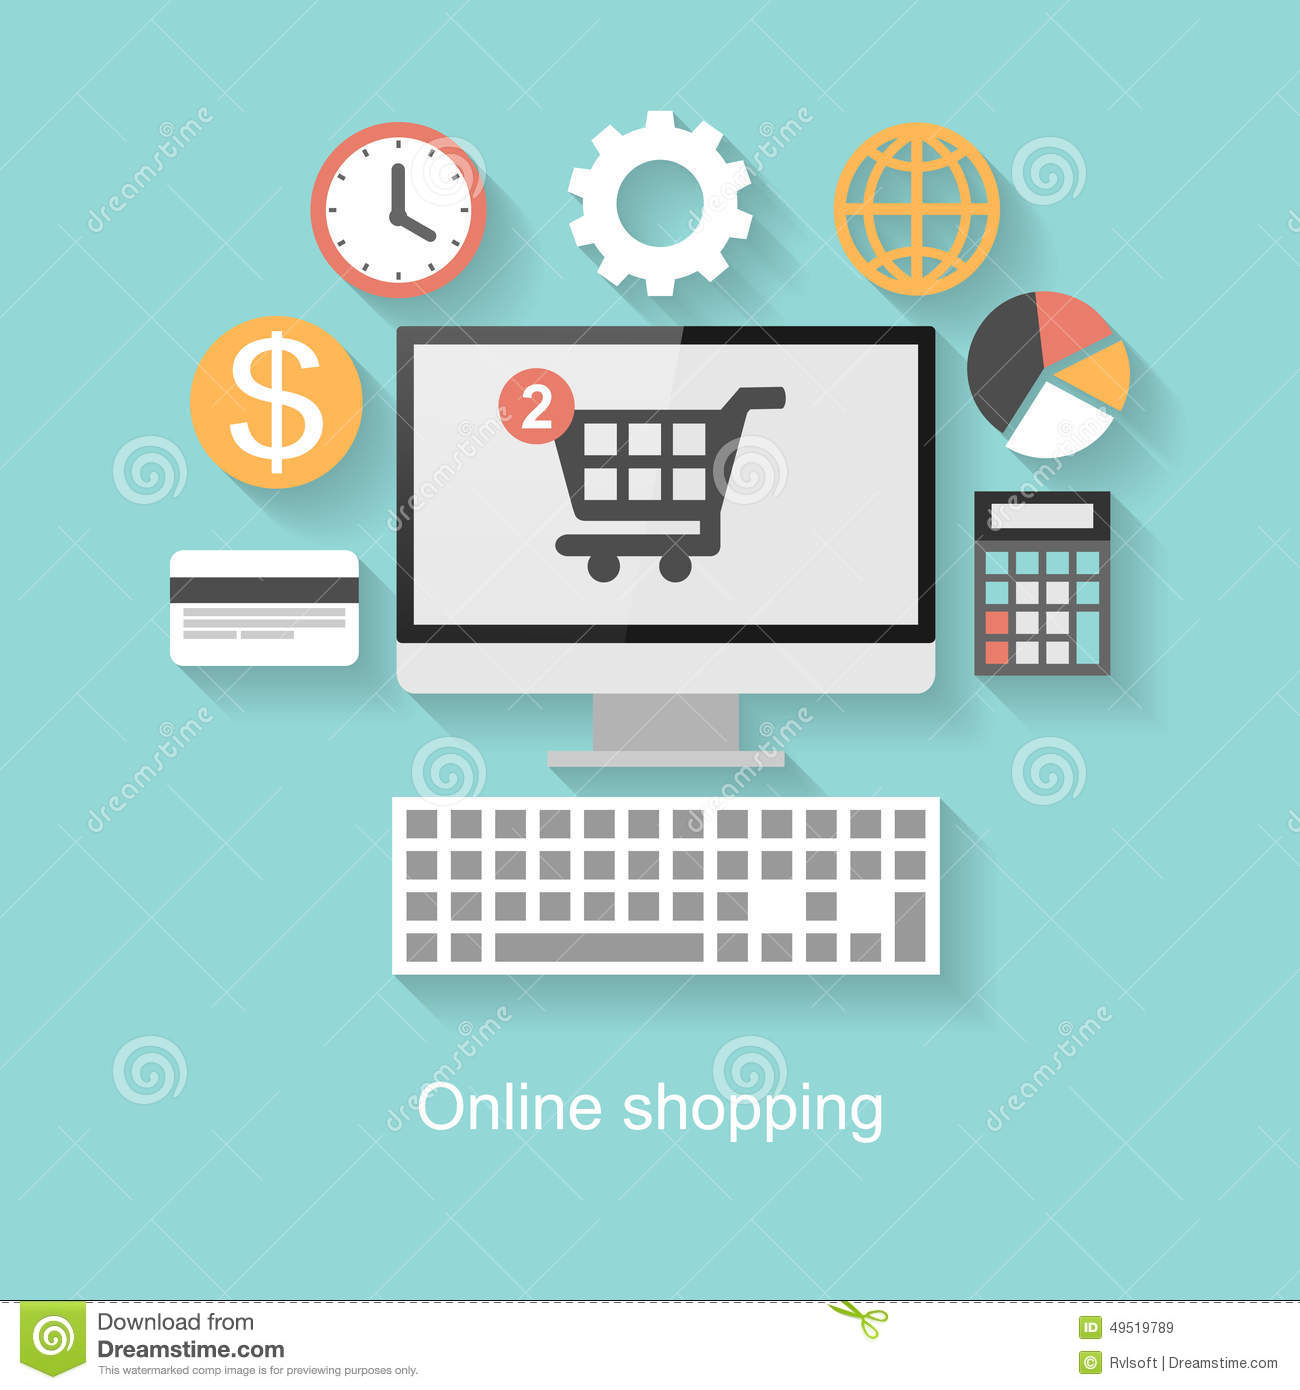 how to buy and sell stocks online uk